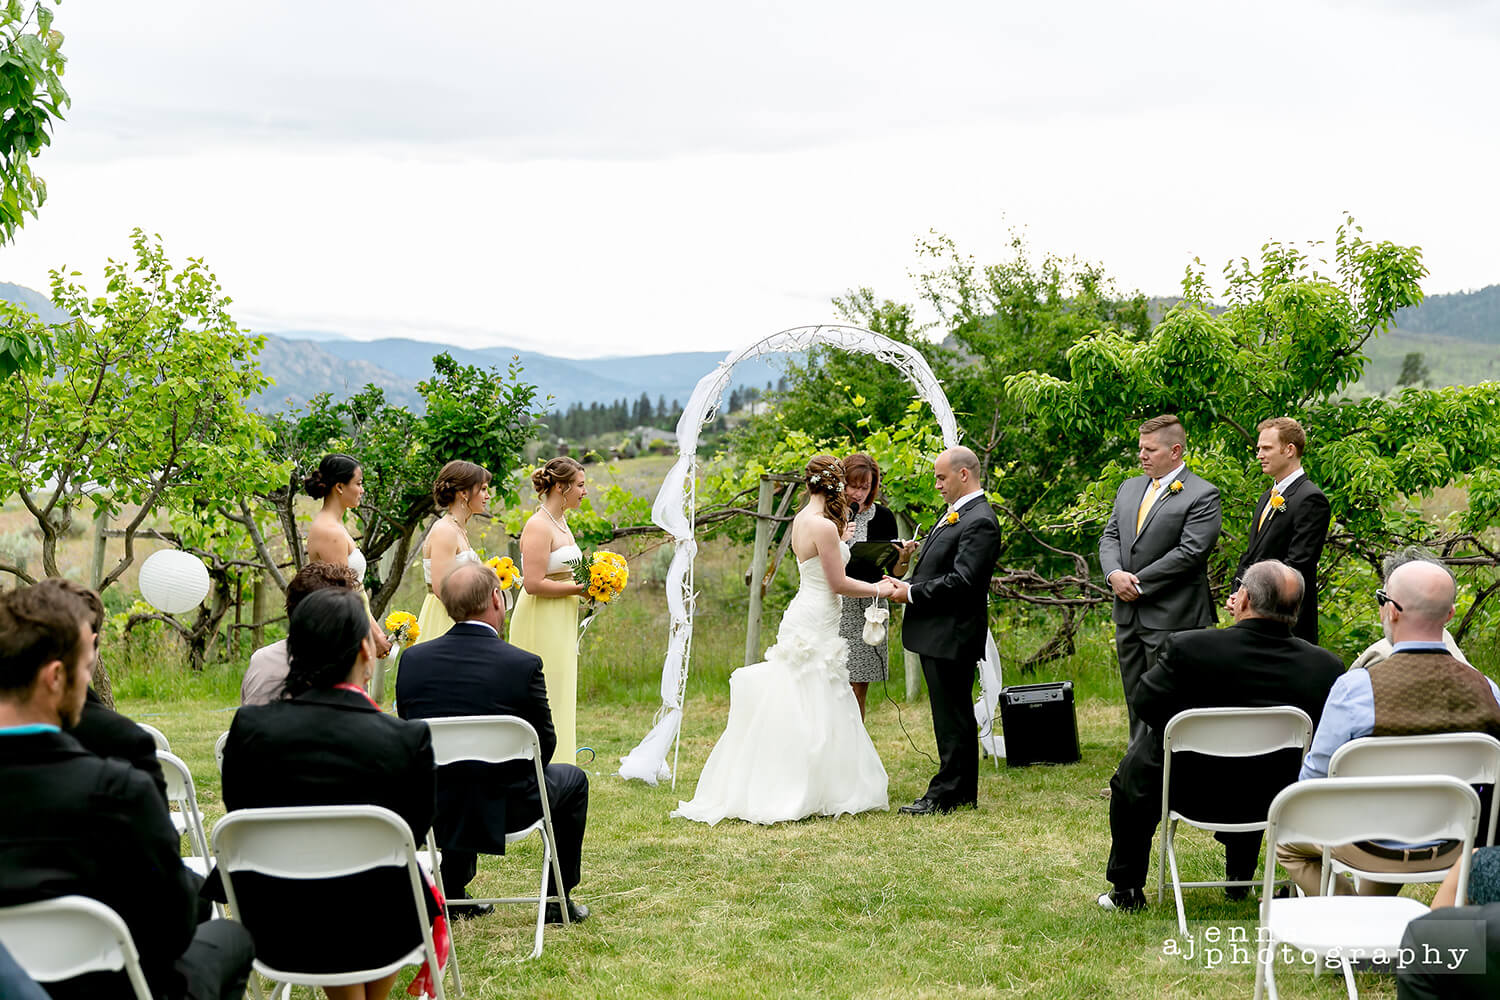 The couple holding hands during the ceremony